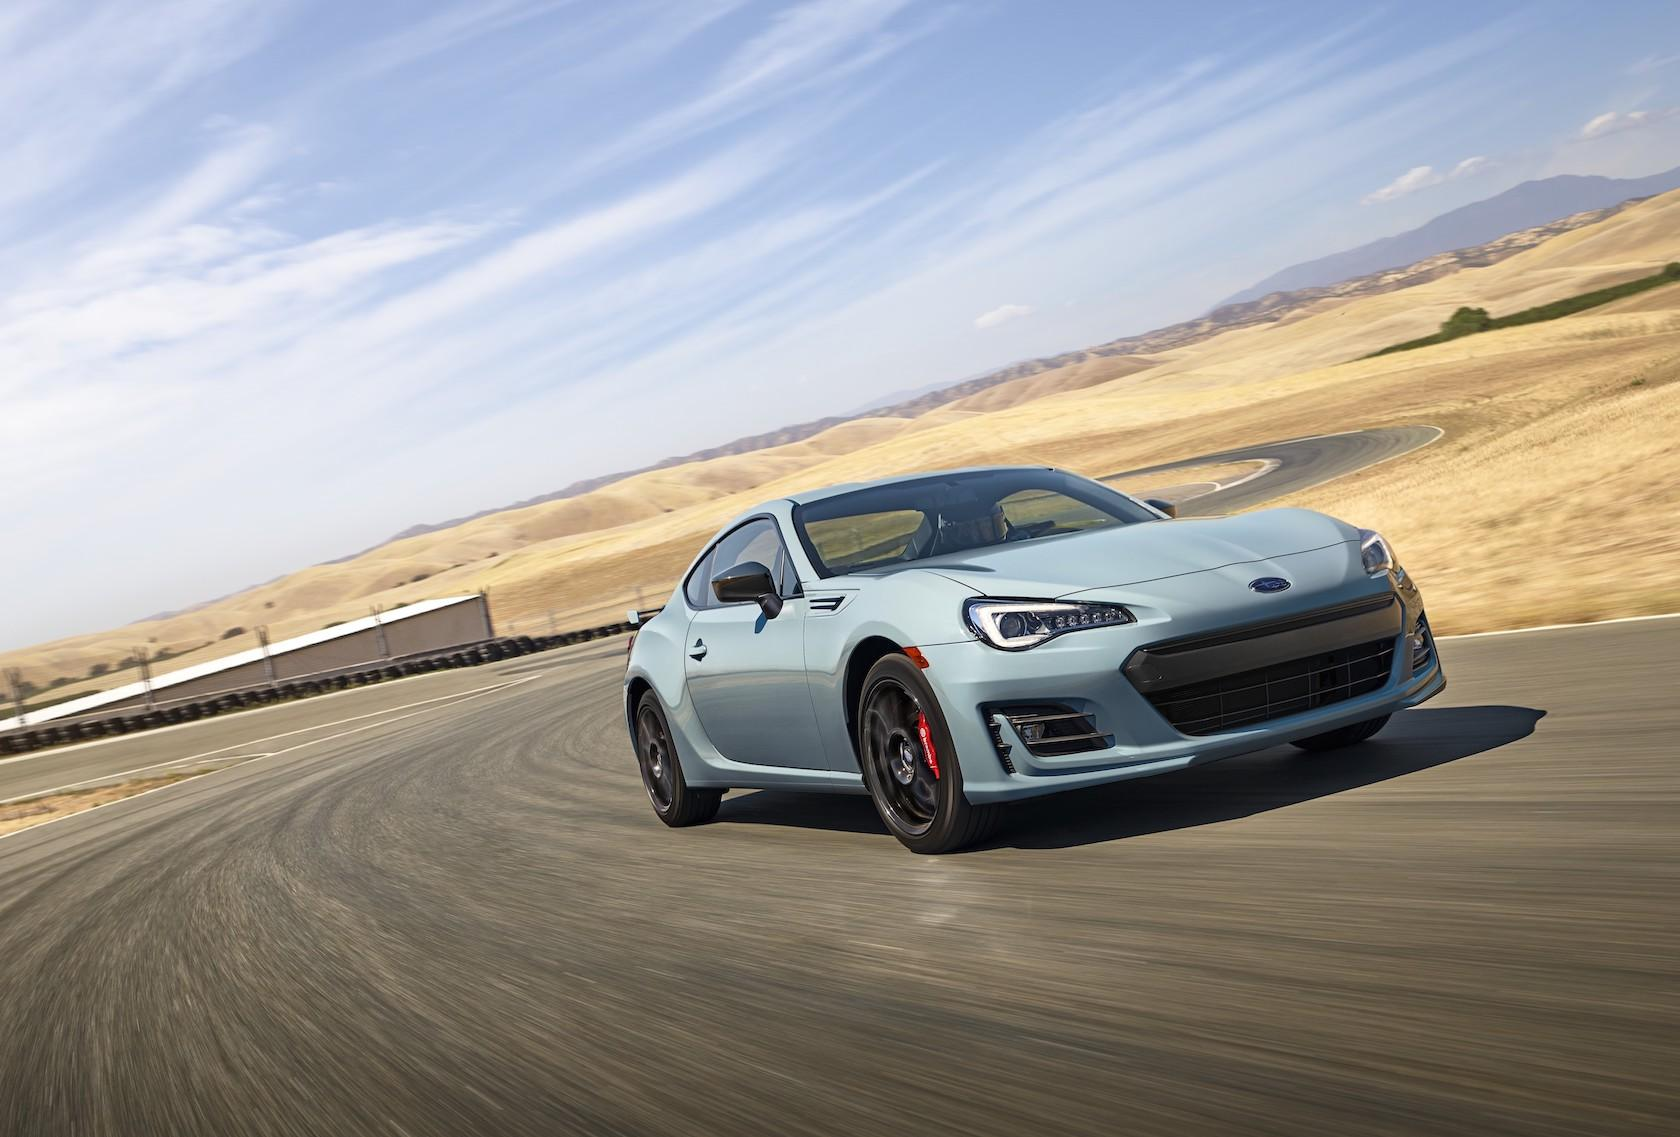 2019 Subaru BRZ Series.Gray leads punchy coupe into new ...